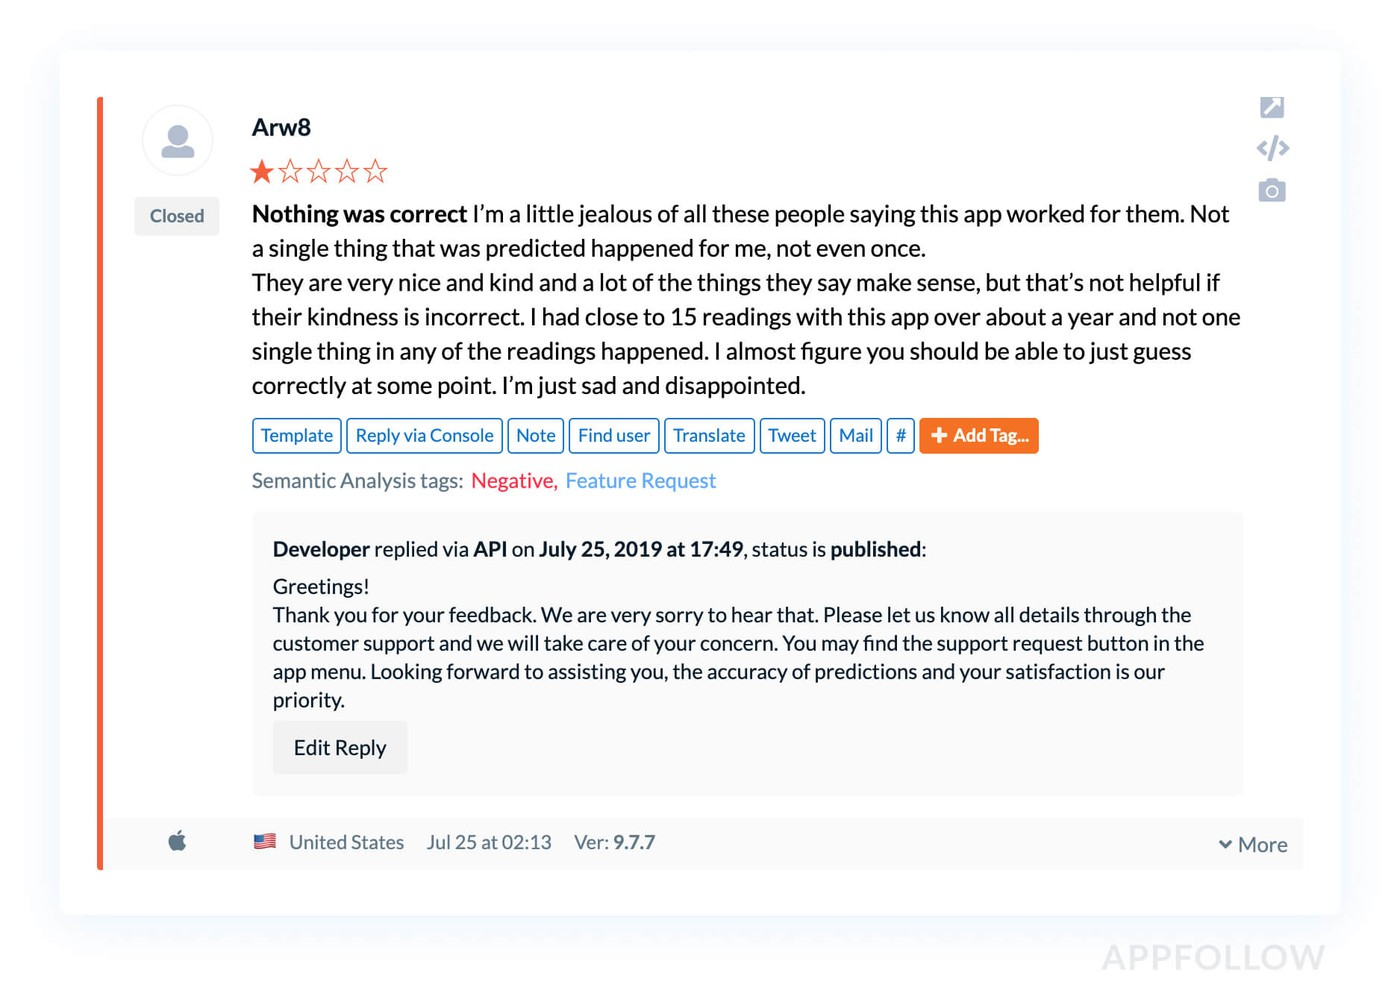 Negative review example in AppFollow